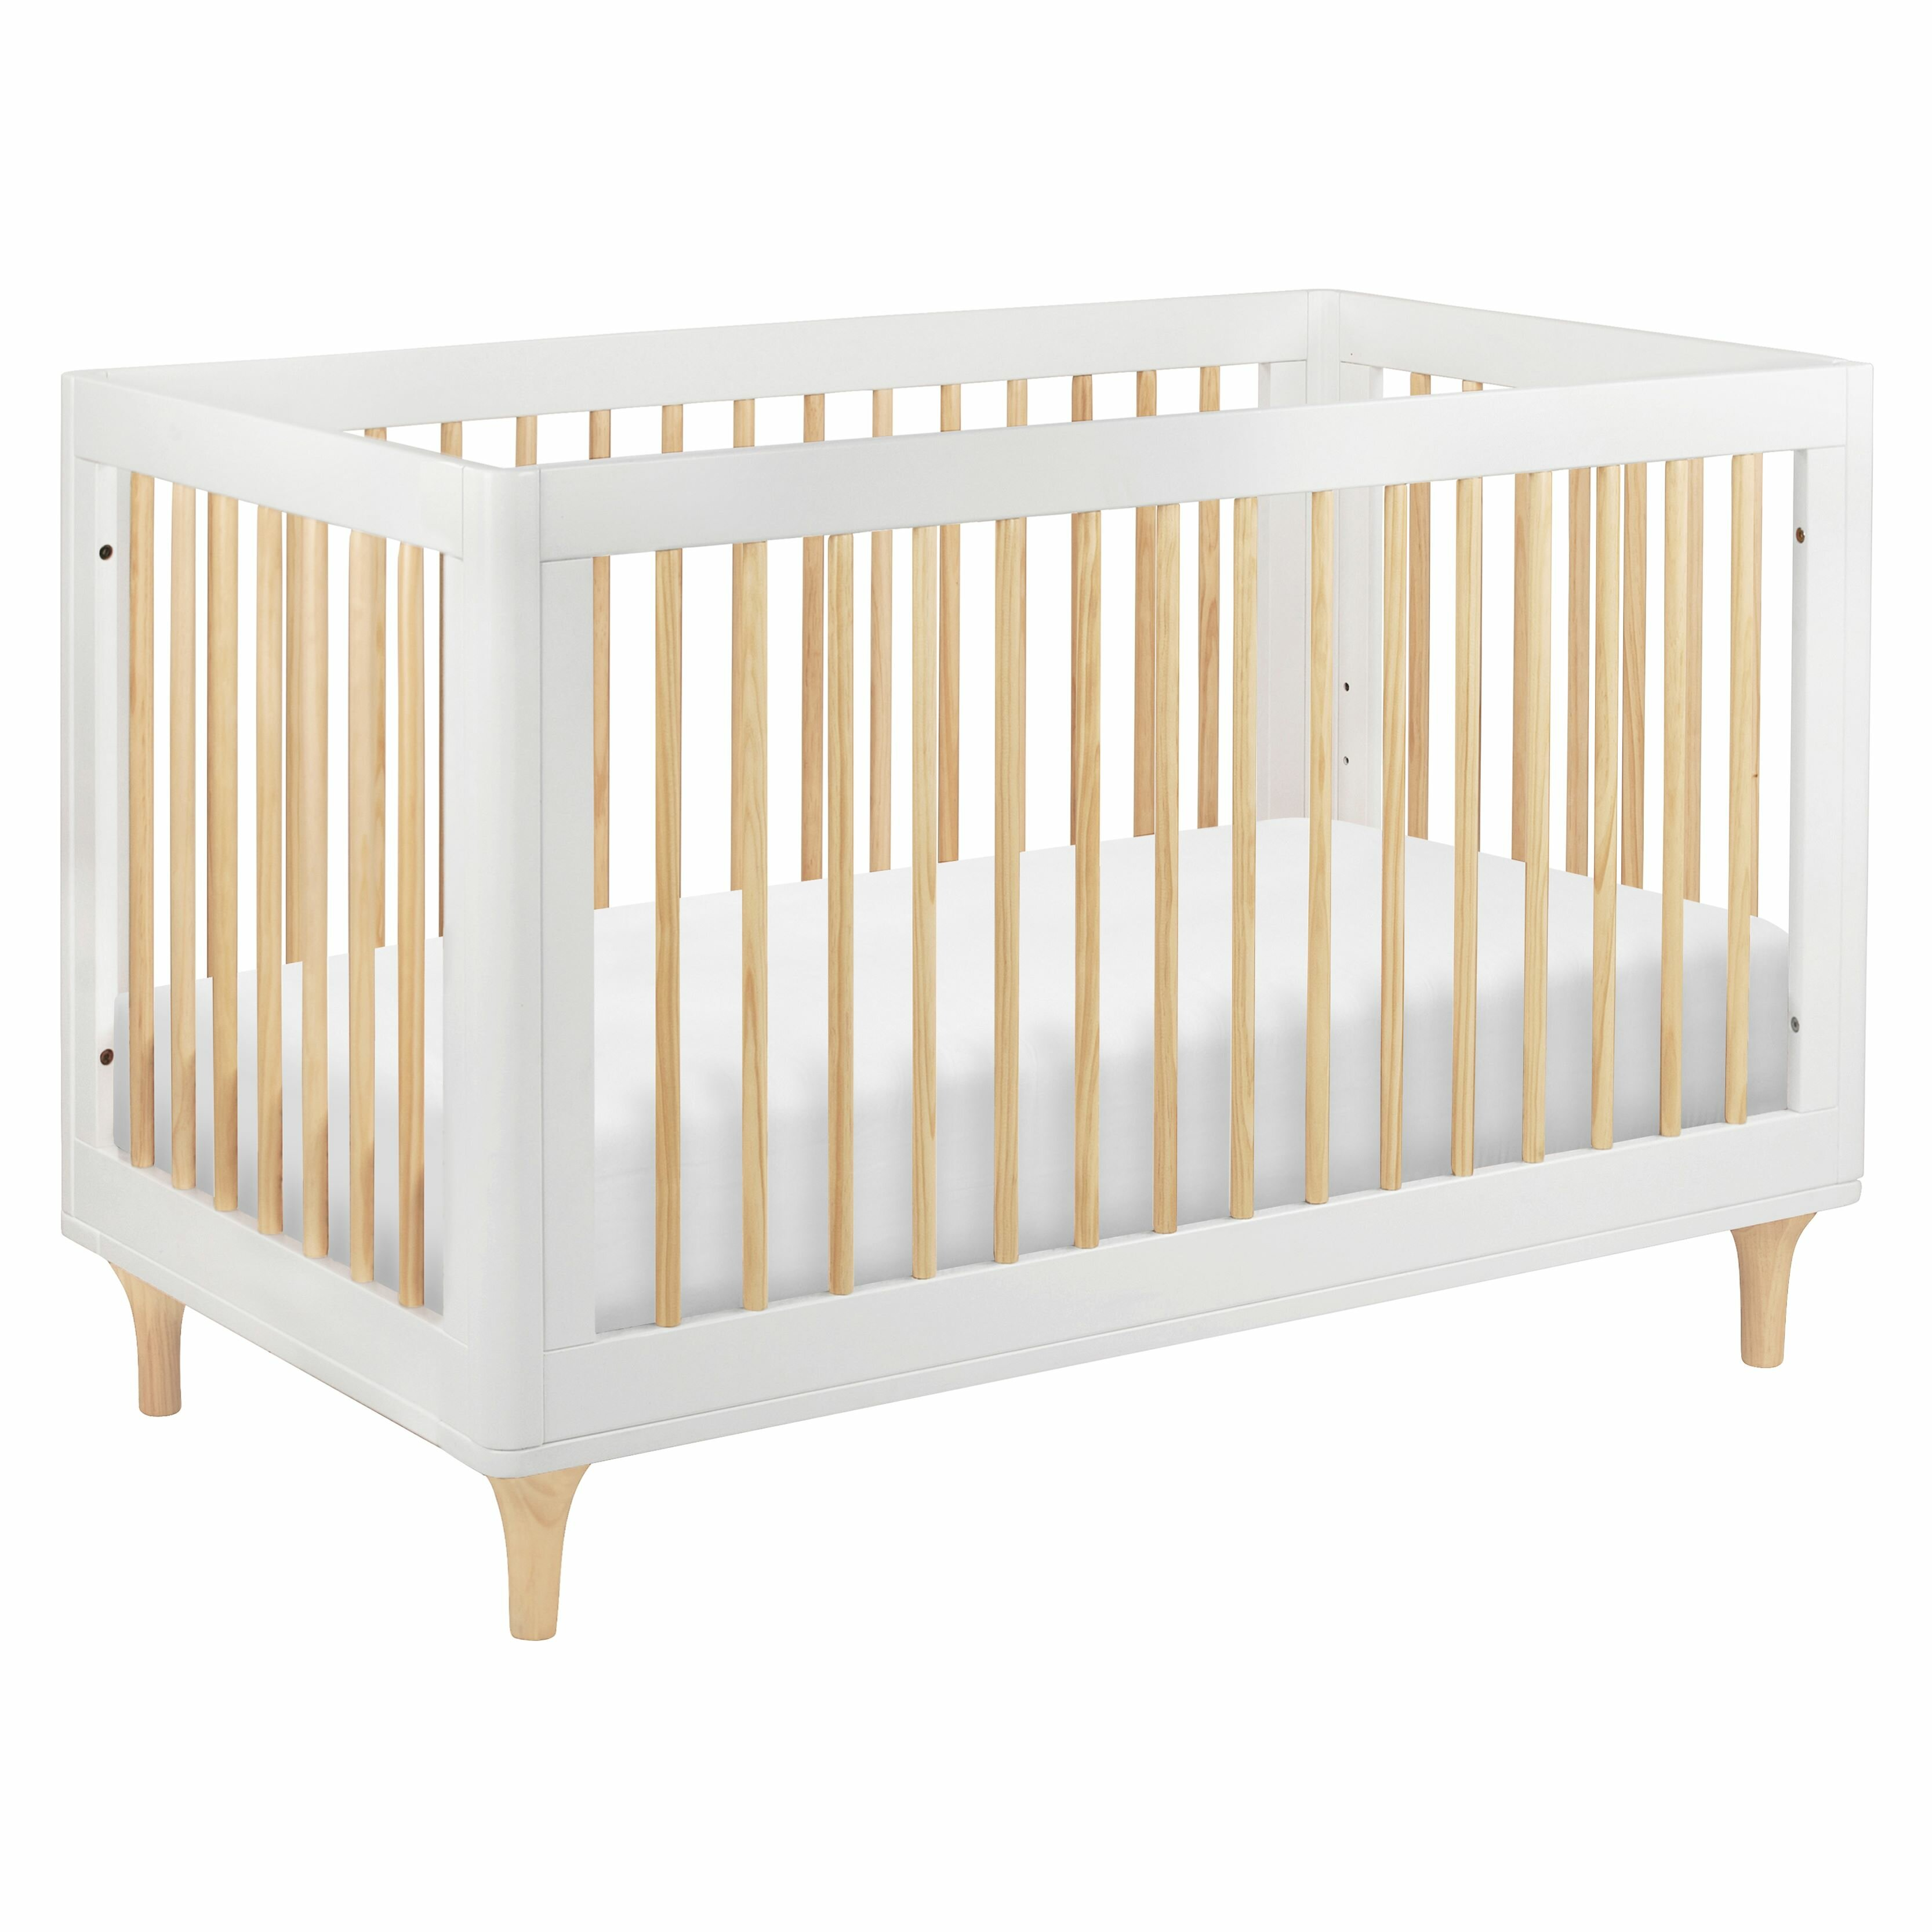 Lolly 3 In 1 Convertible Crib